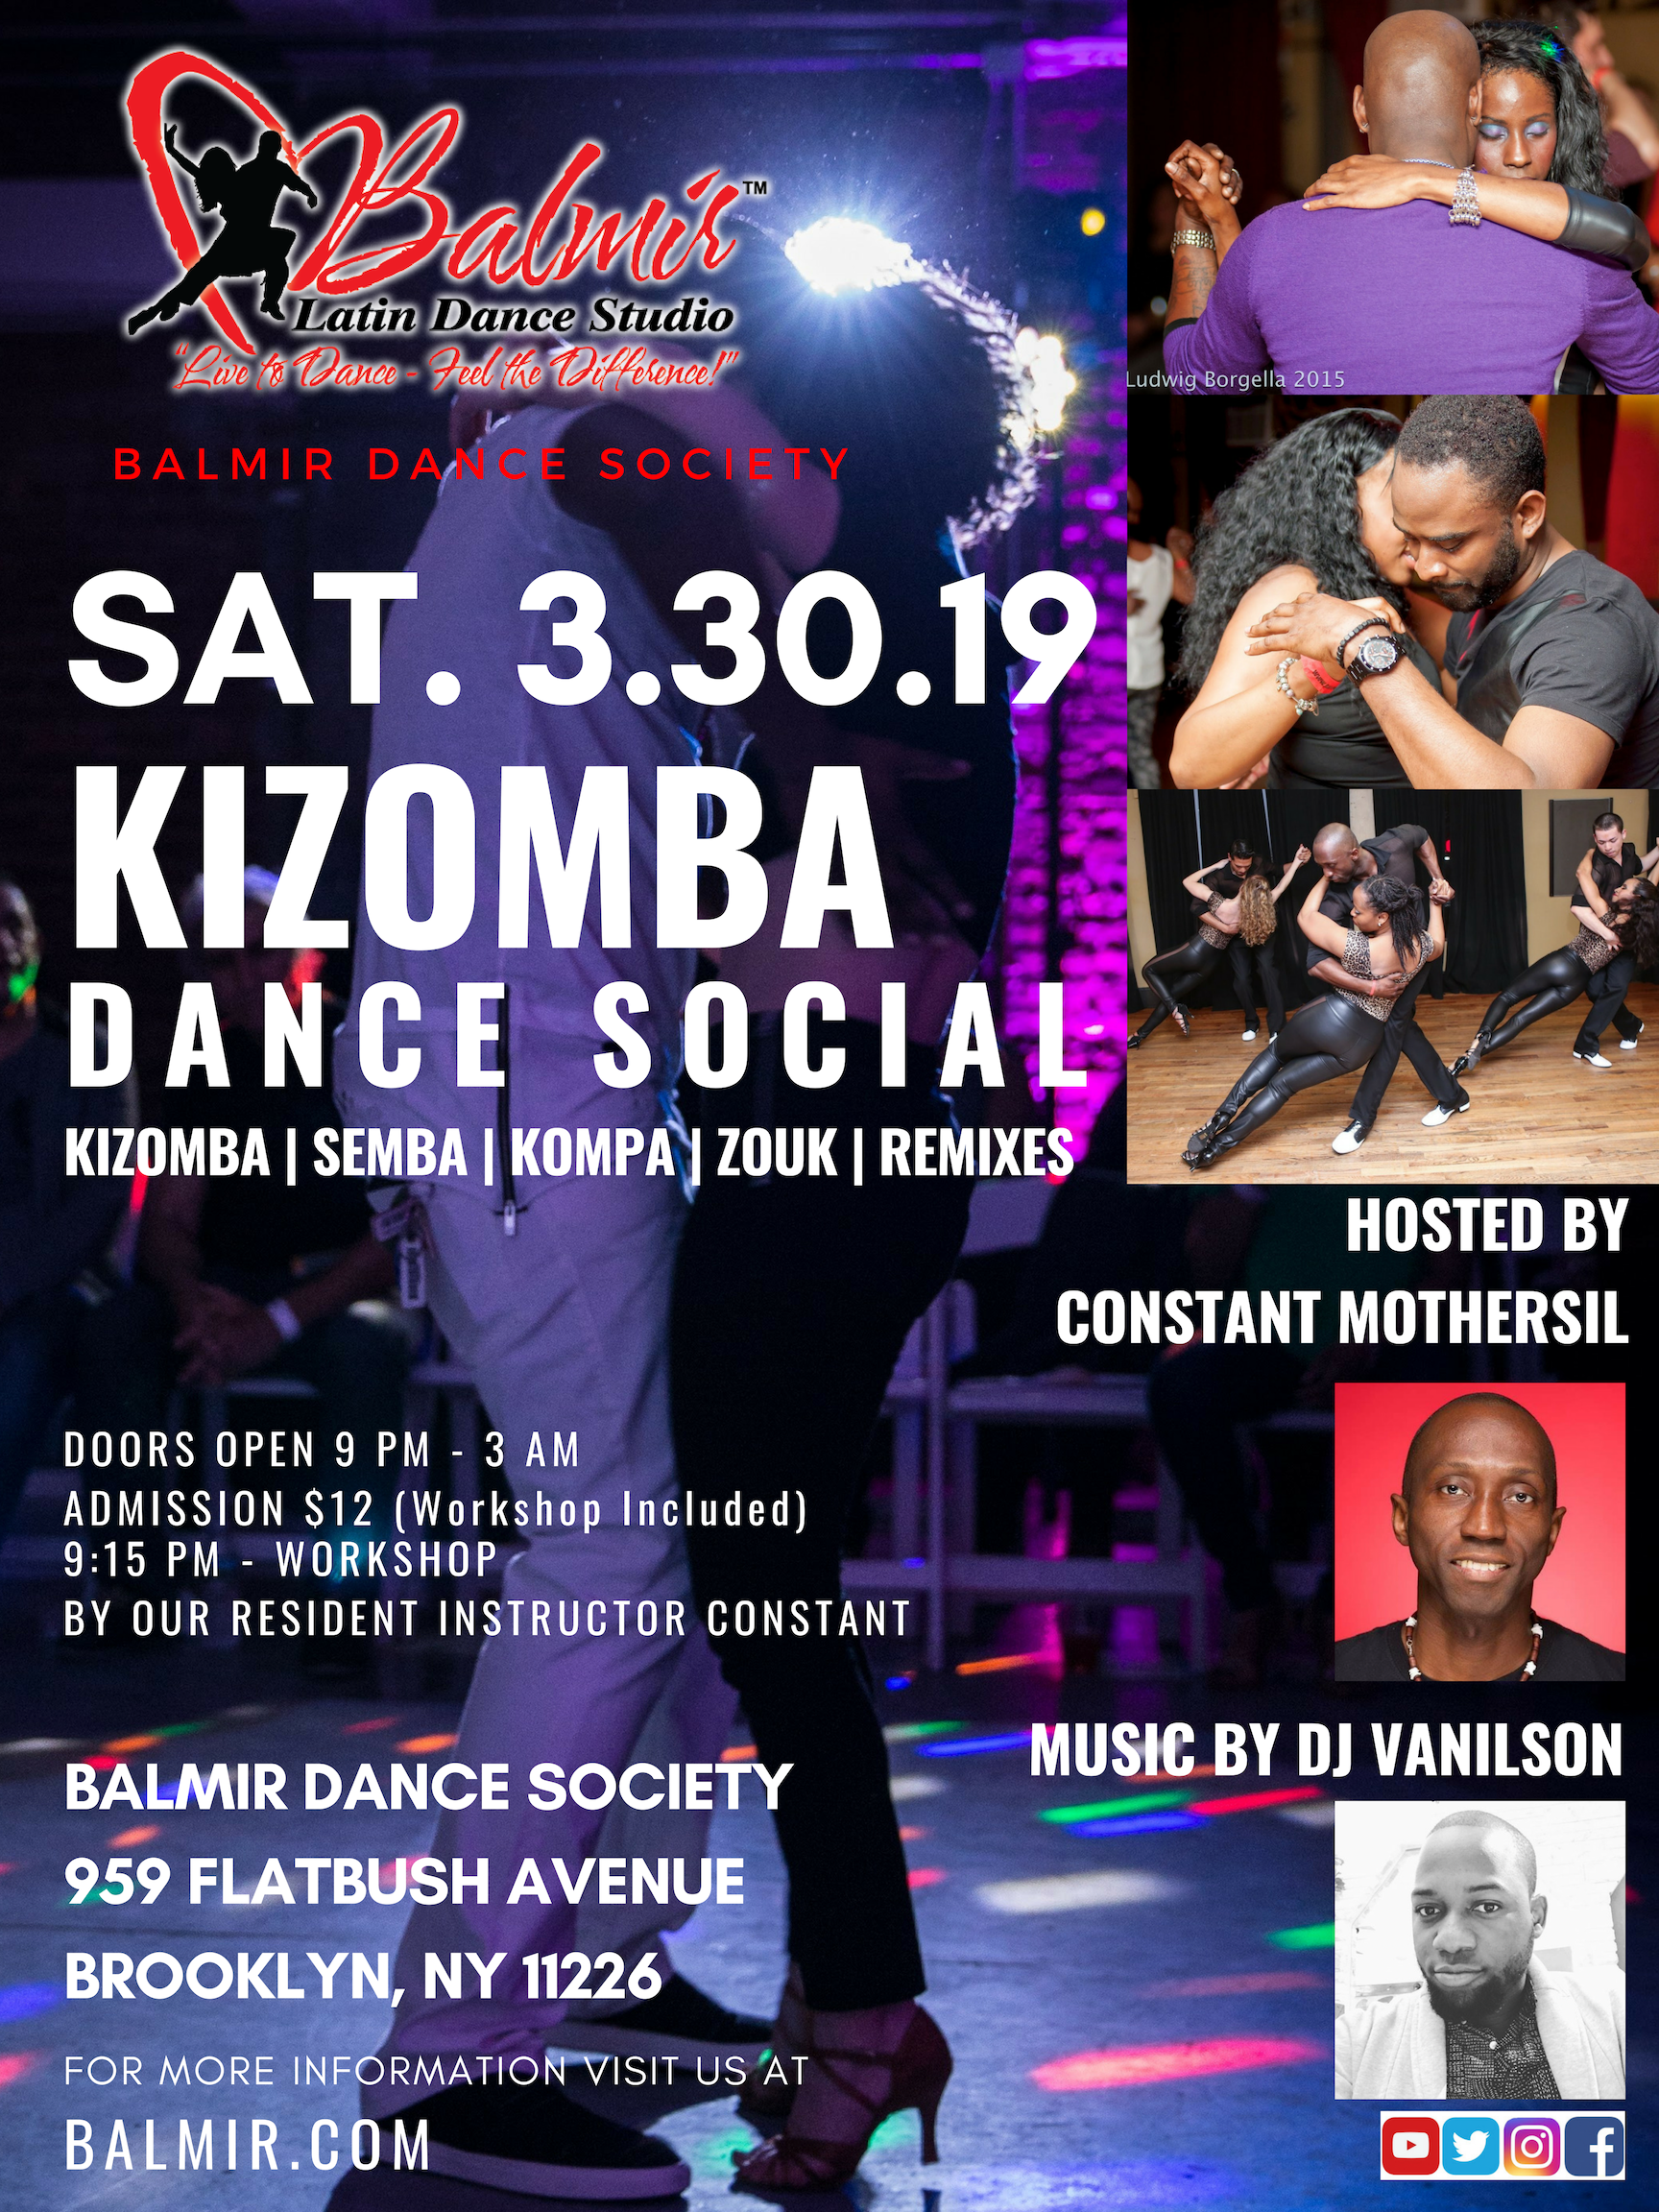 March 30 2019 KIZOMBA SOCIAL DANCE PARTY BROOKLYN NEW YORK CITY EVENTS FUN